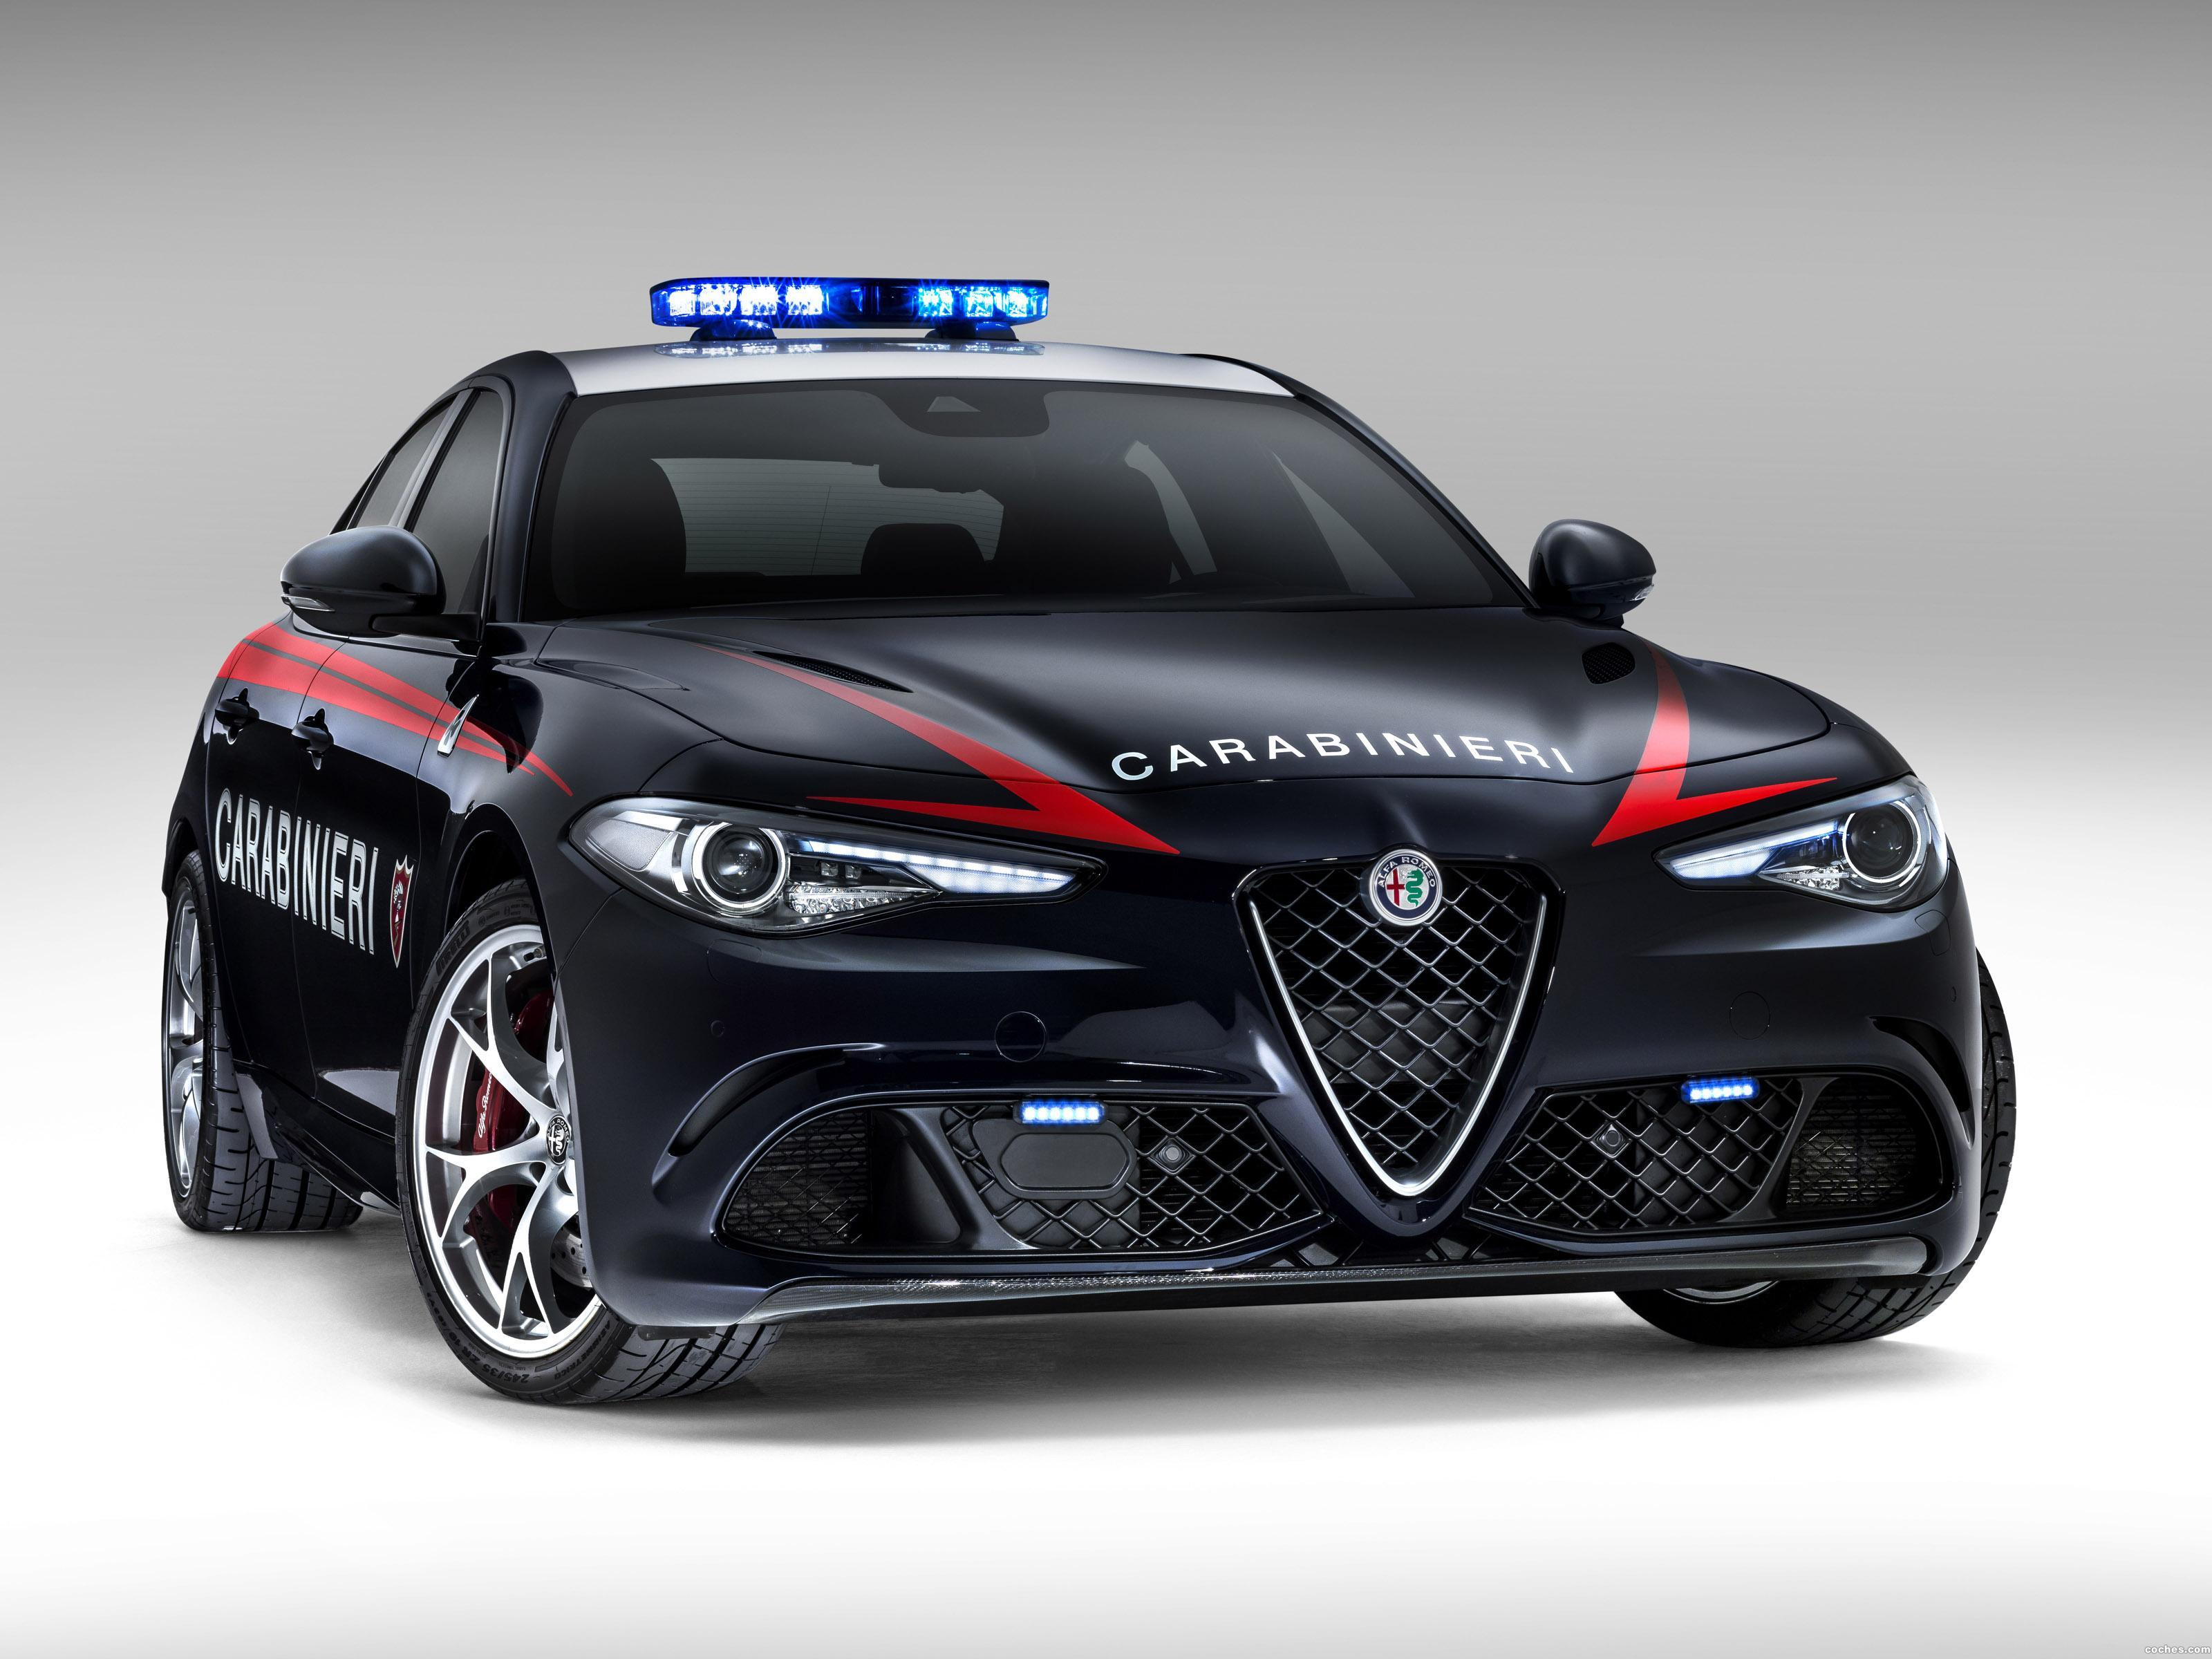 fotos de alfa romeo giulia quadrifoglio verde carabinieri. Black Bedroom Furniture Sets. Home Design Ideas